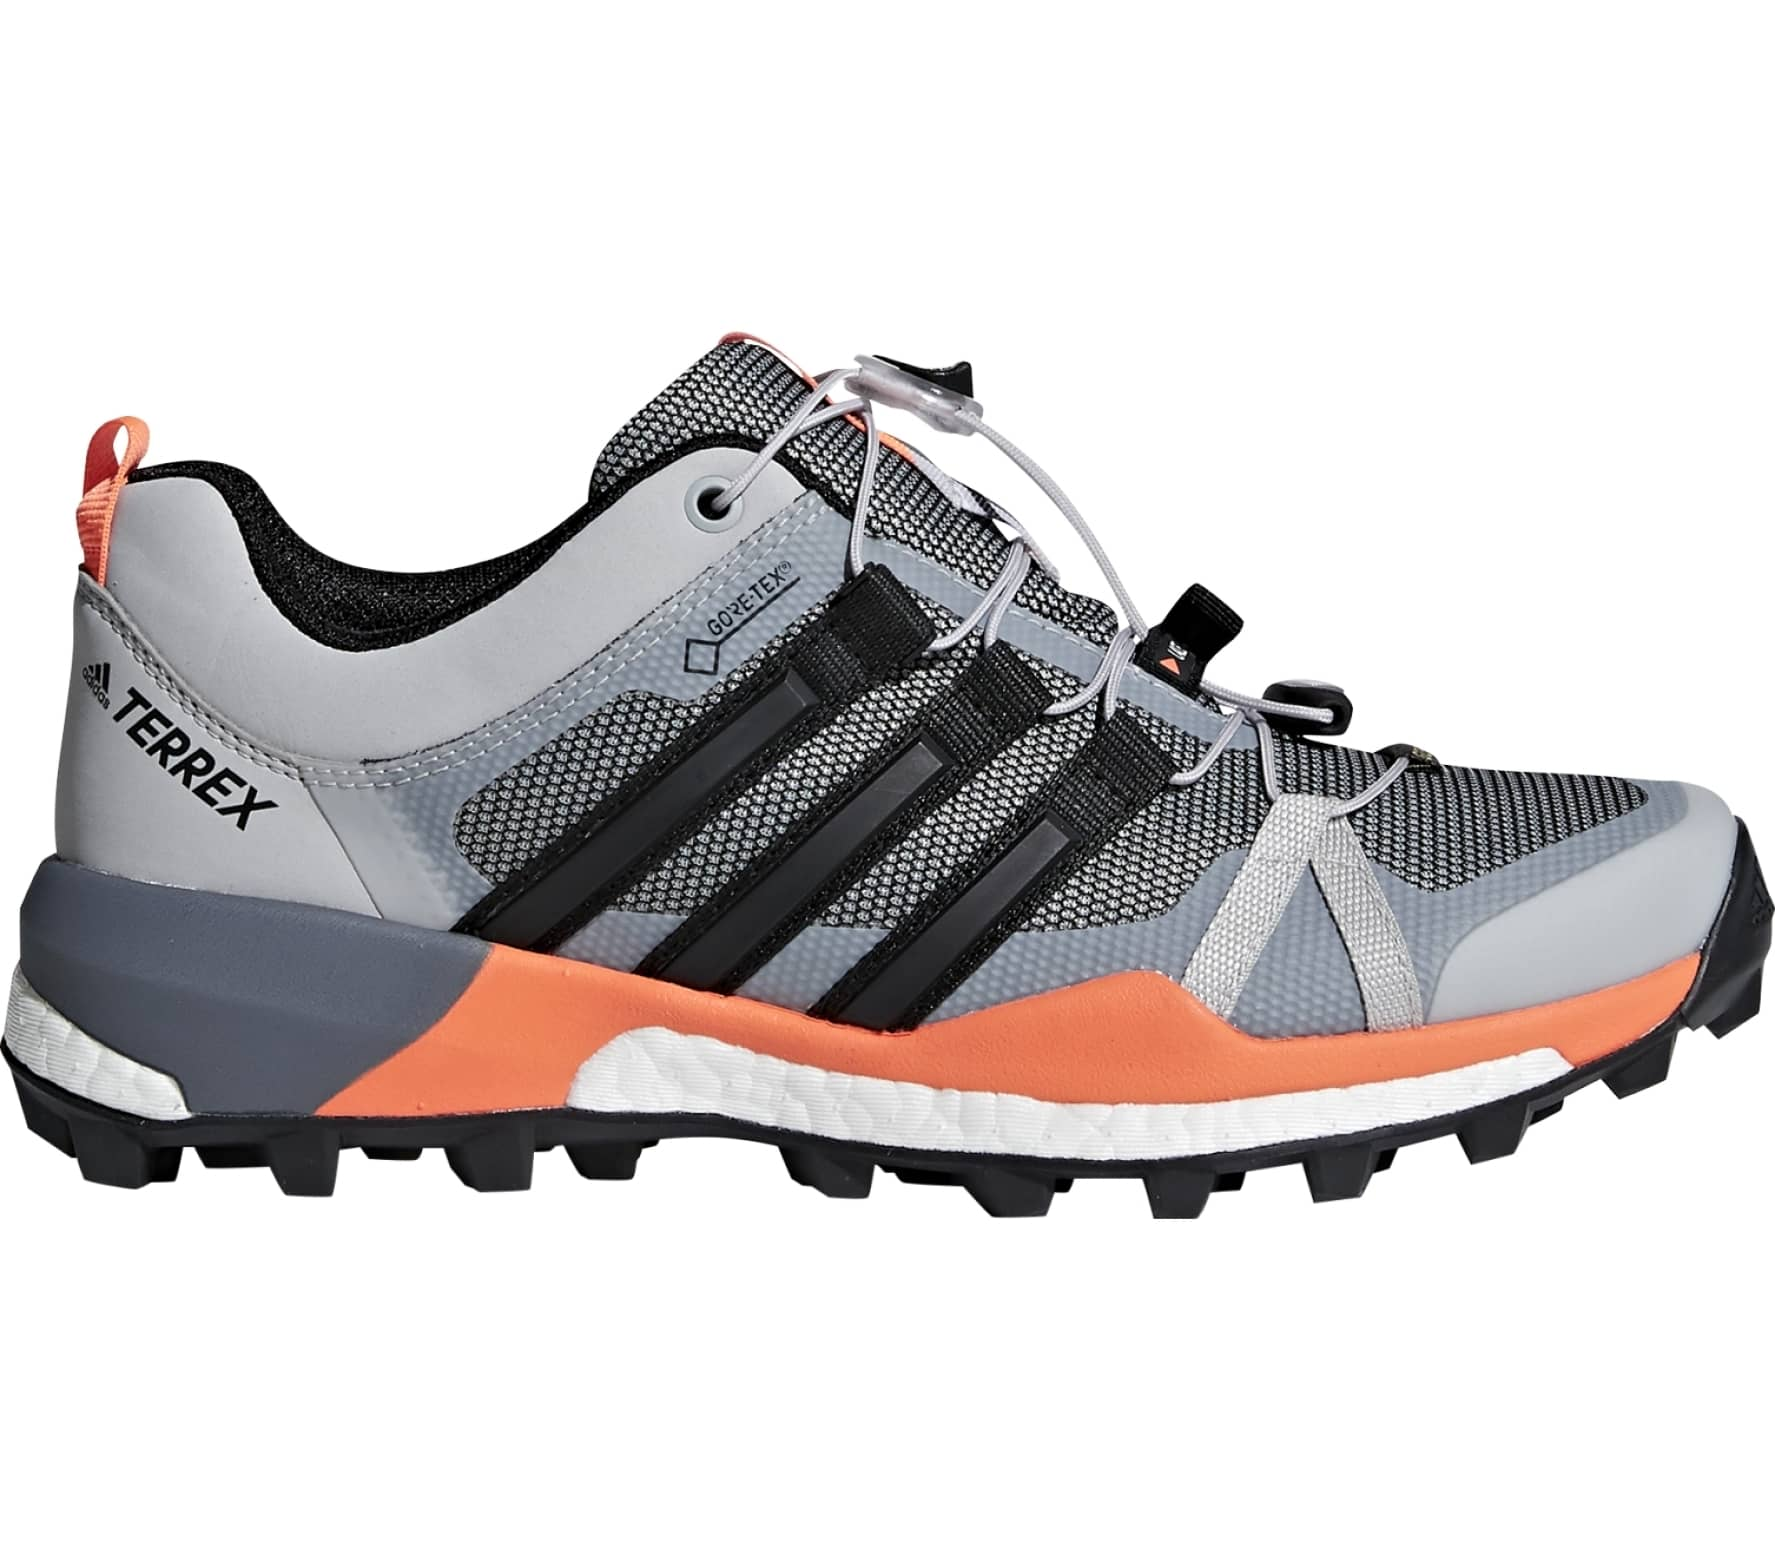 757cfcff9e08 Adidas - Terrex Skychaser Gtx women s mountain running shoes (grey orange)